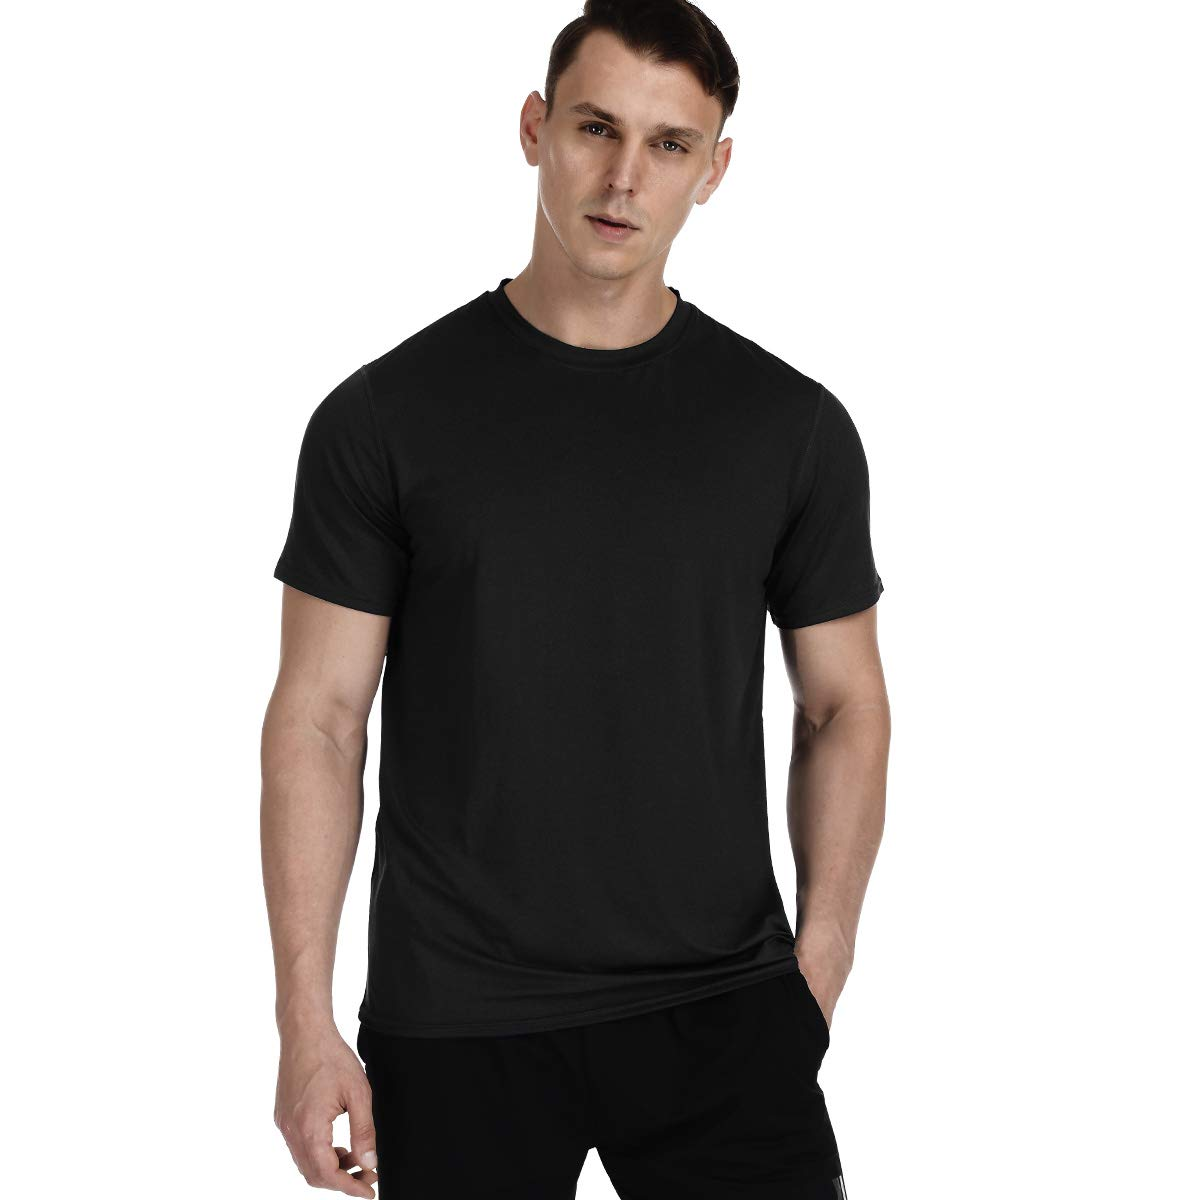 MeetHoo Men's Athletic T Shirts, Quick Dry Workout Short Sleeve Shirt Gym Tops for Sport Running